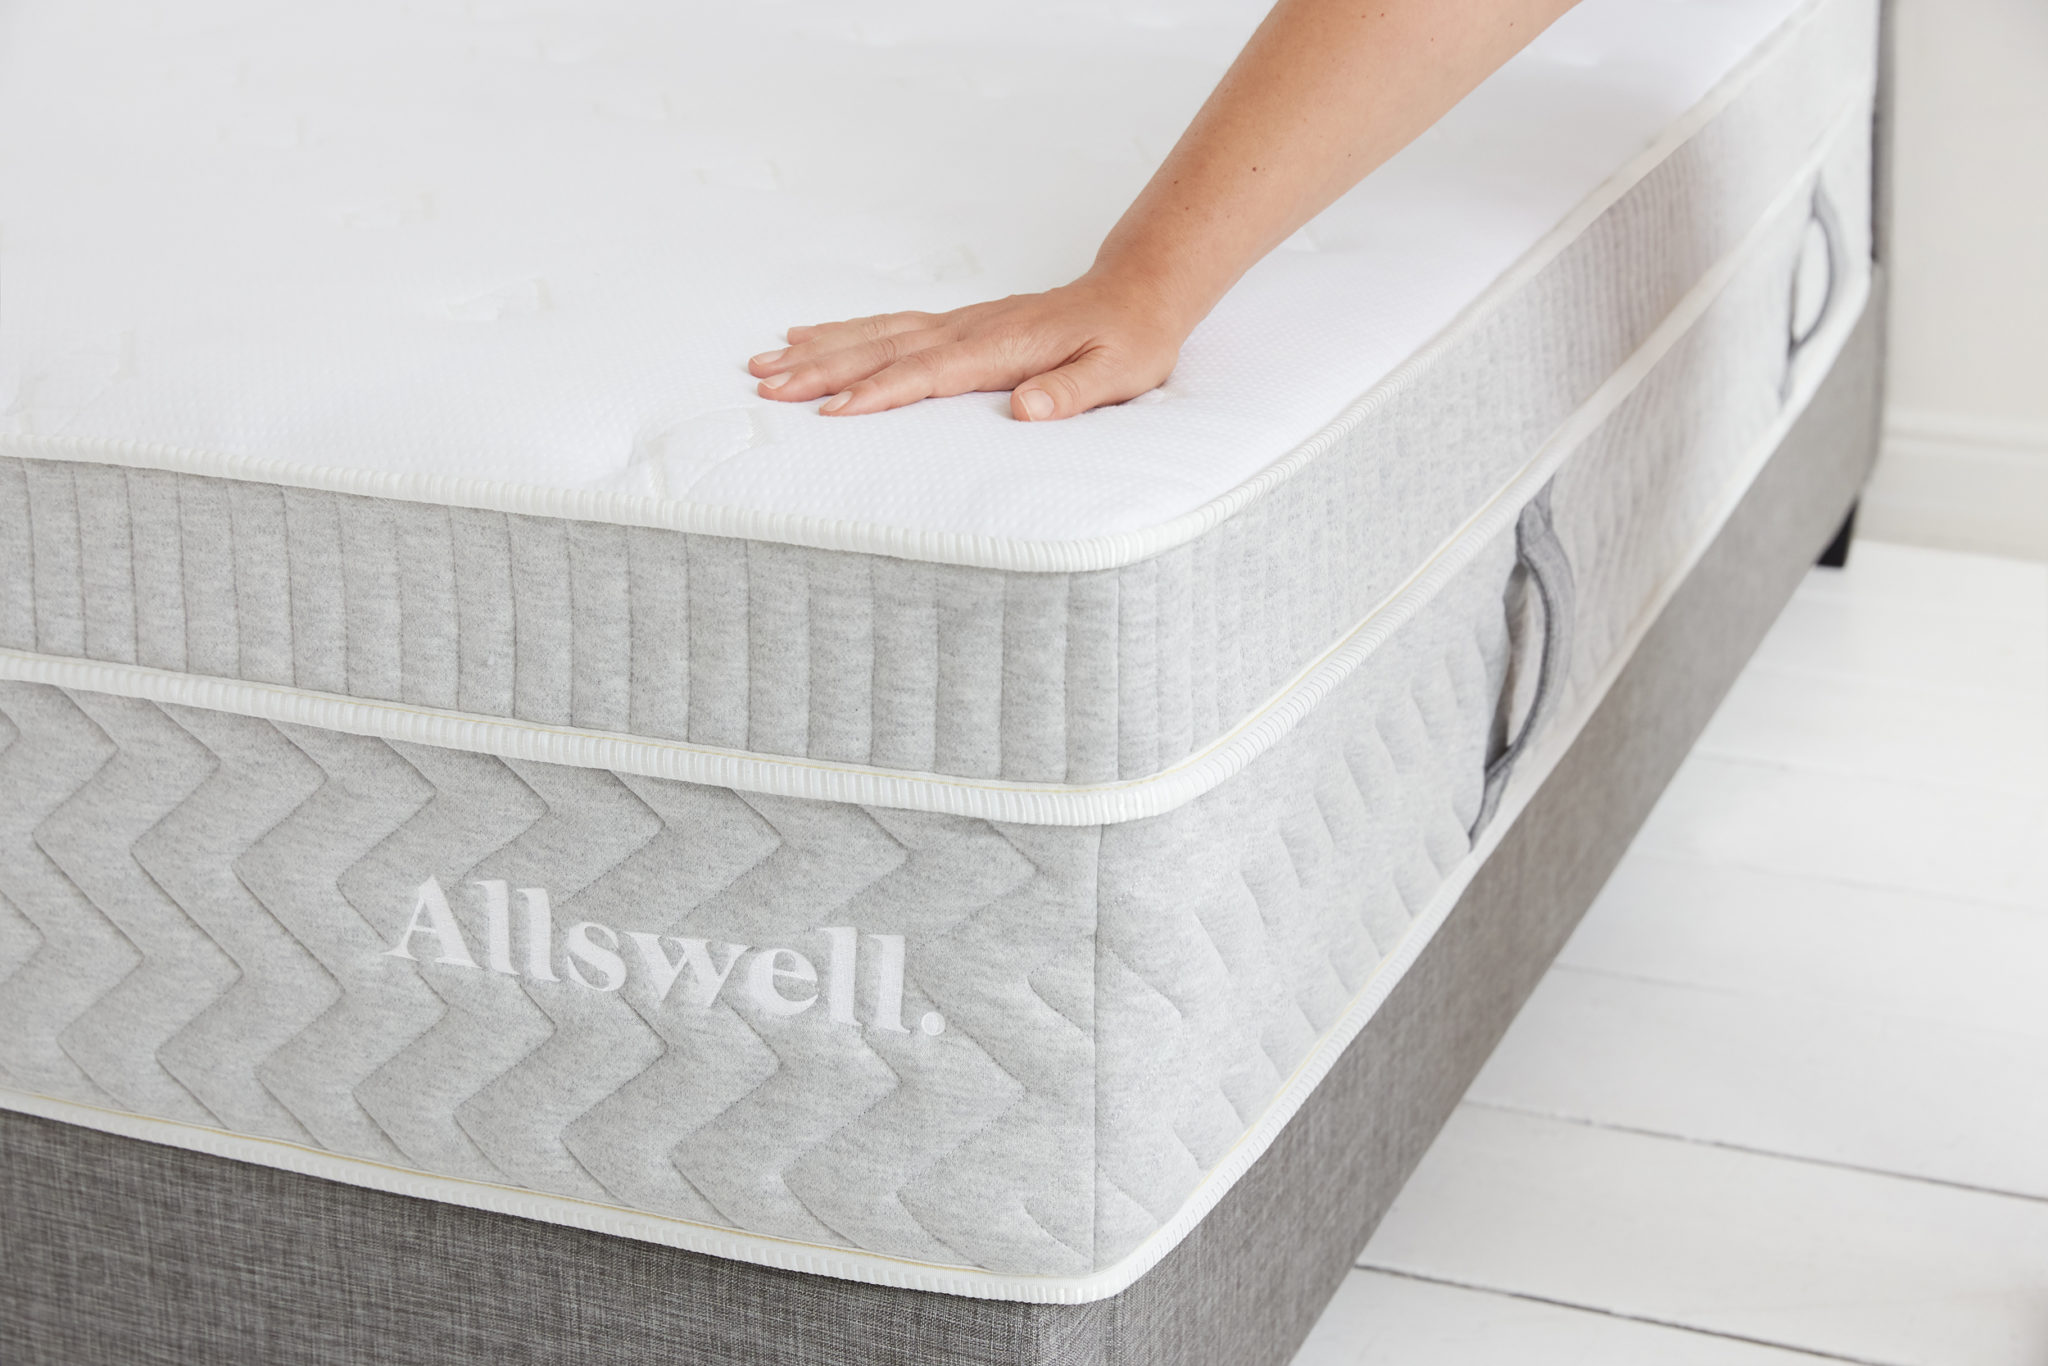 allswell supreme mattress side